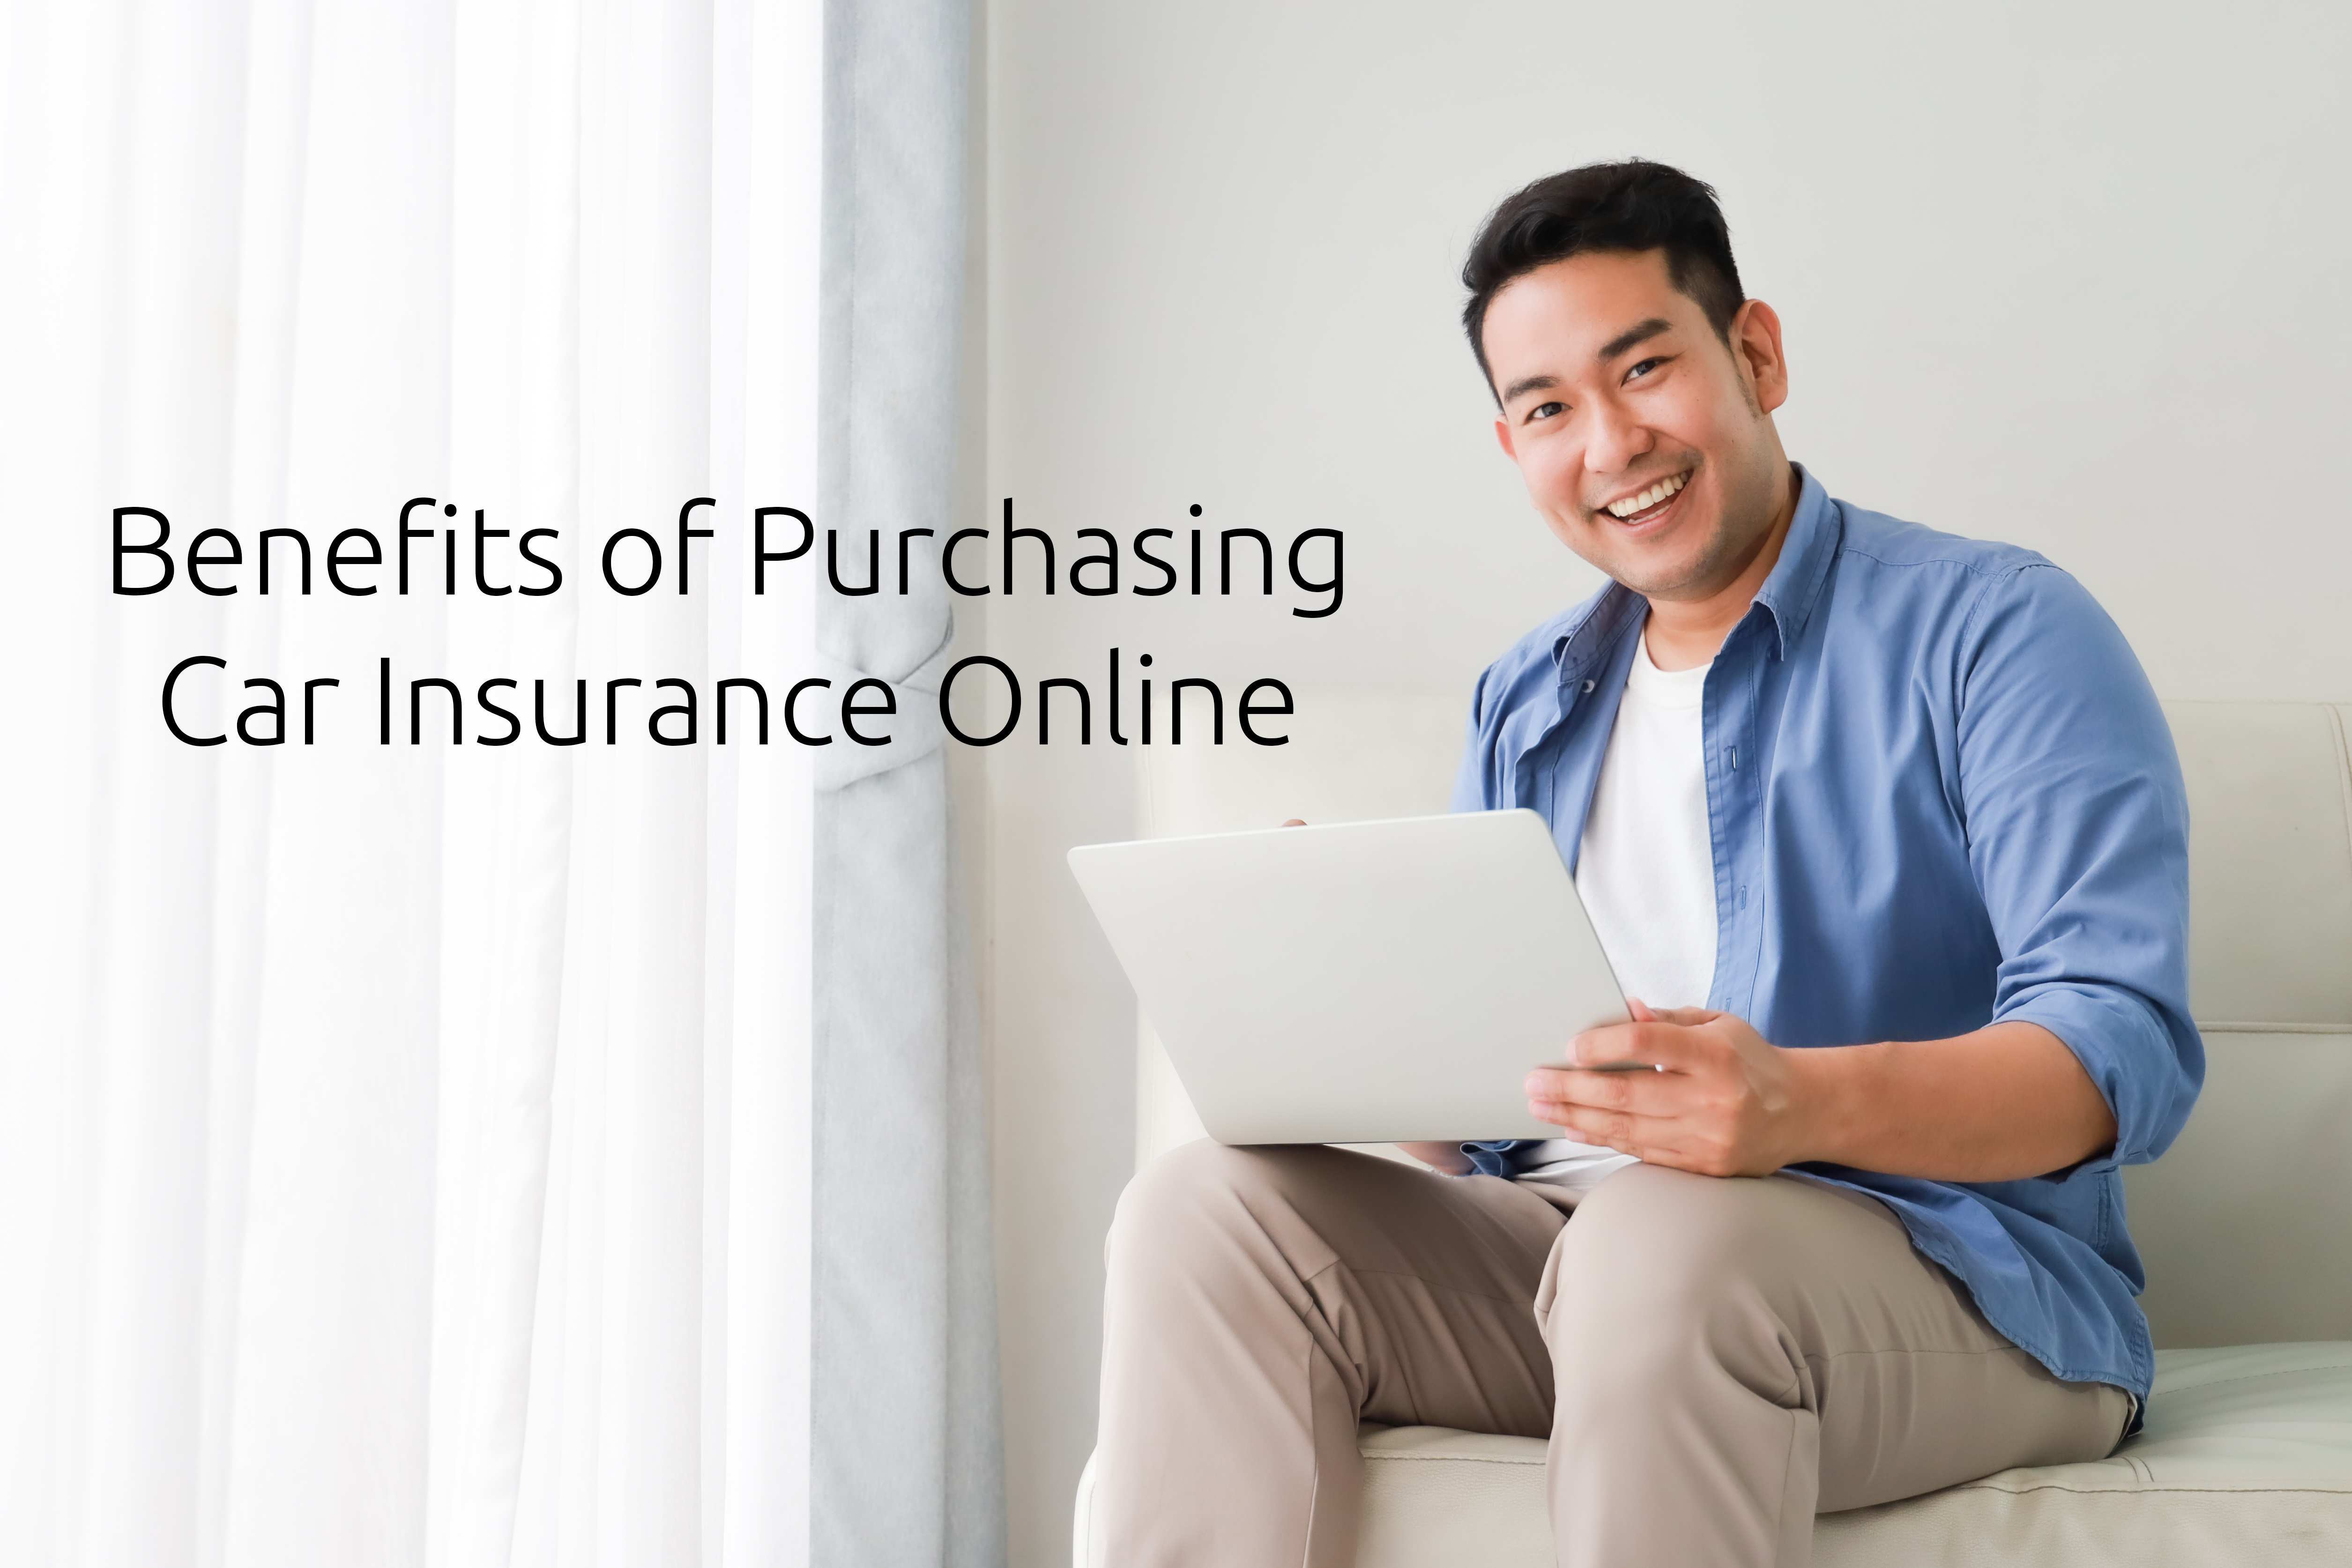 asian-man-purchasing-with-laptop-computer-car-insurance-online-featured-image